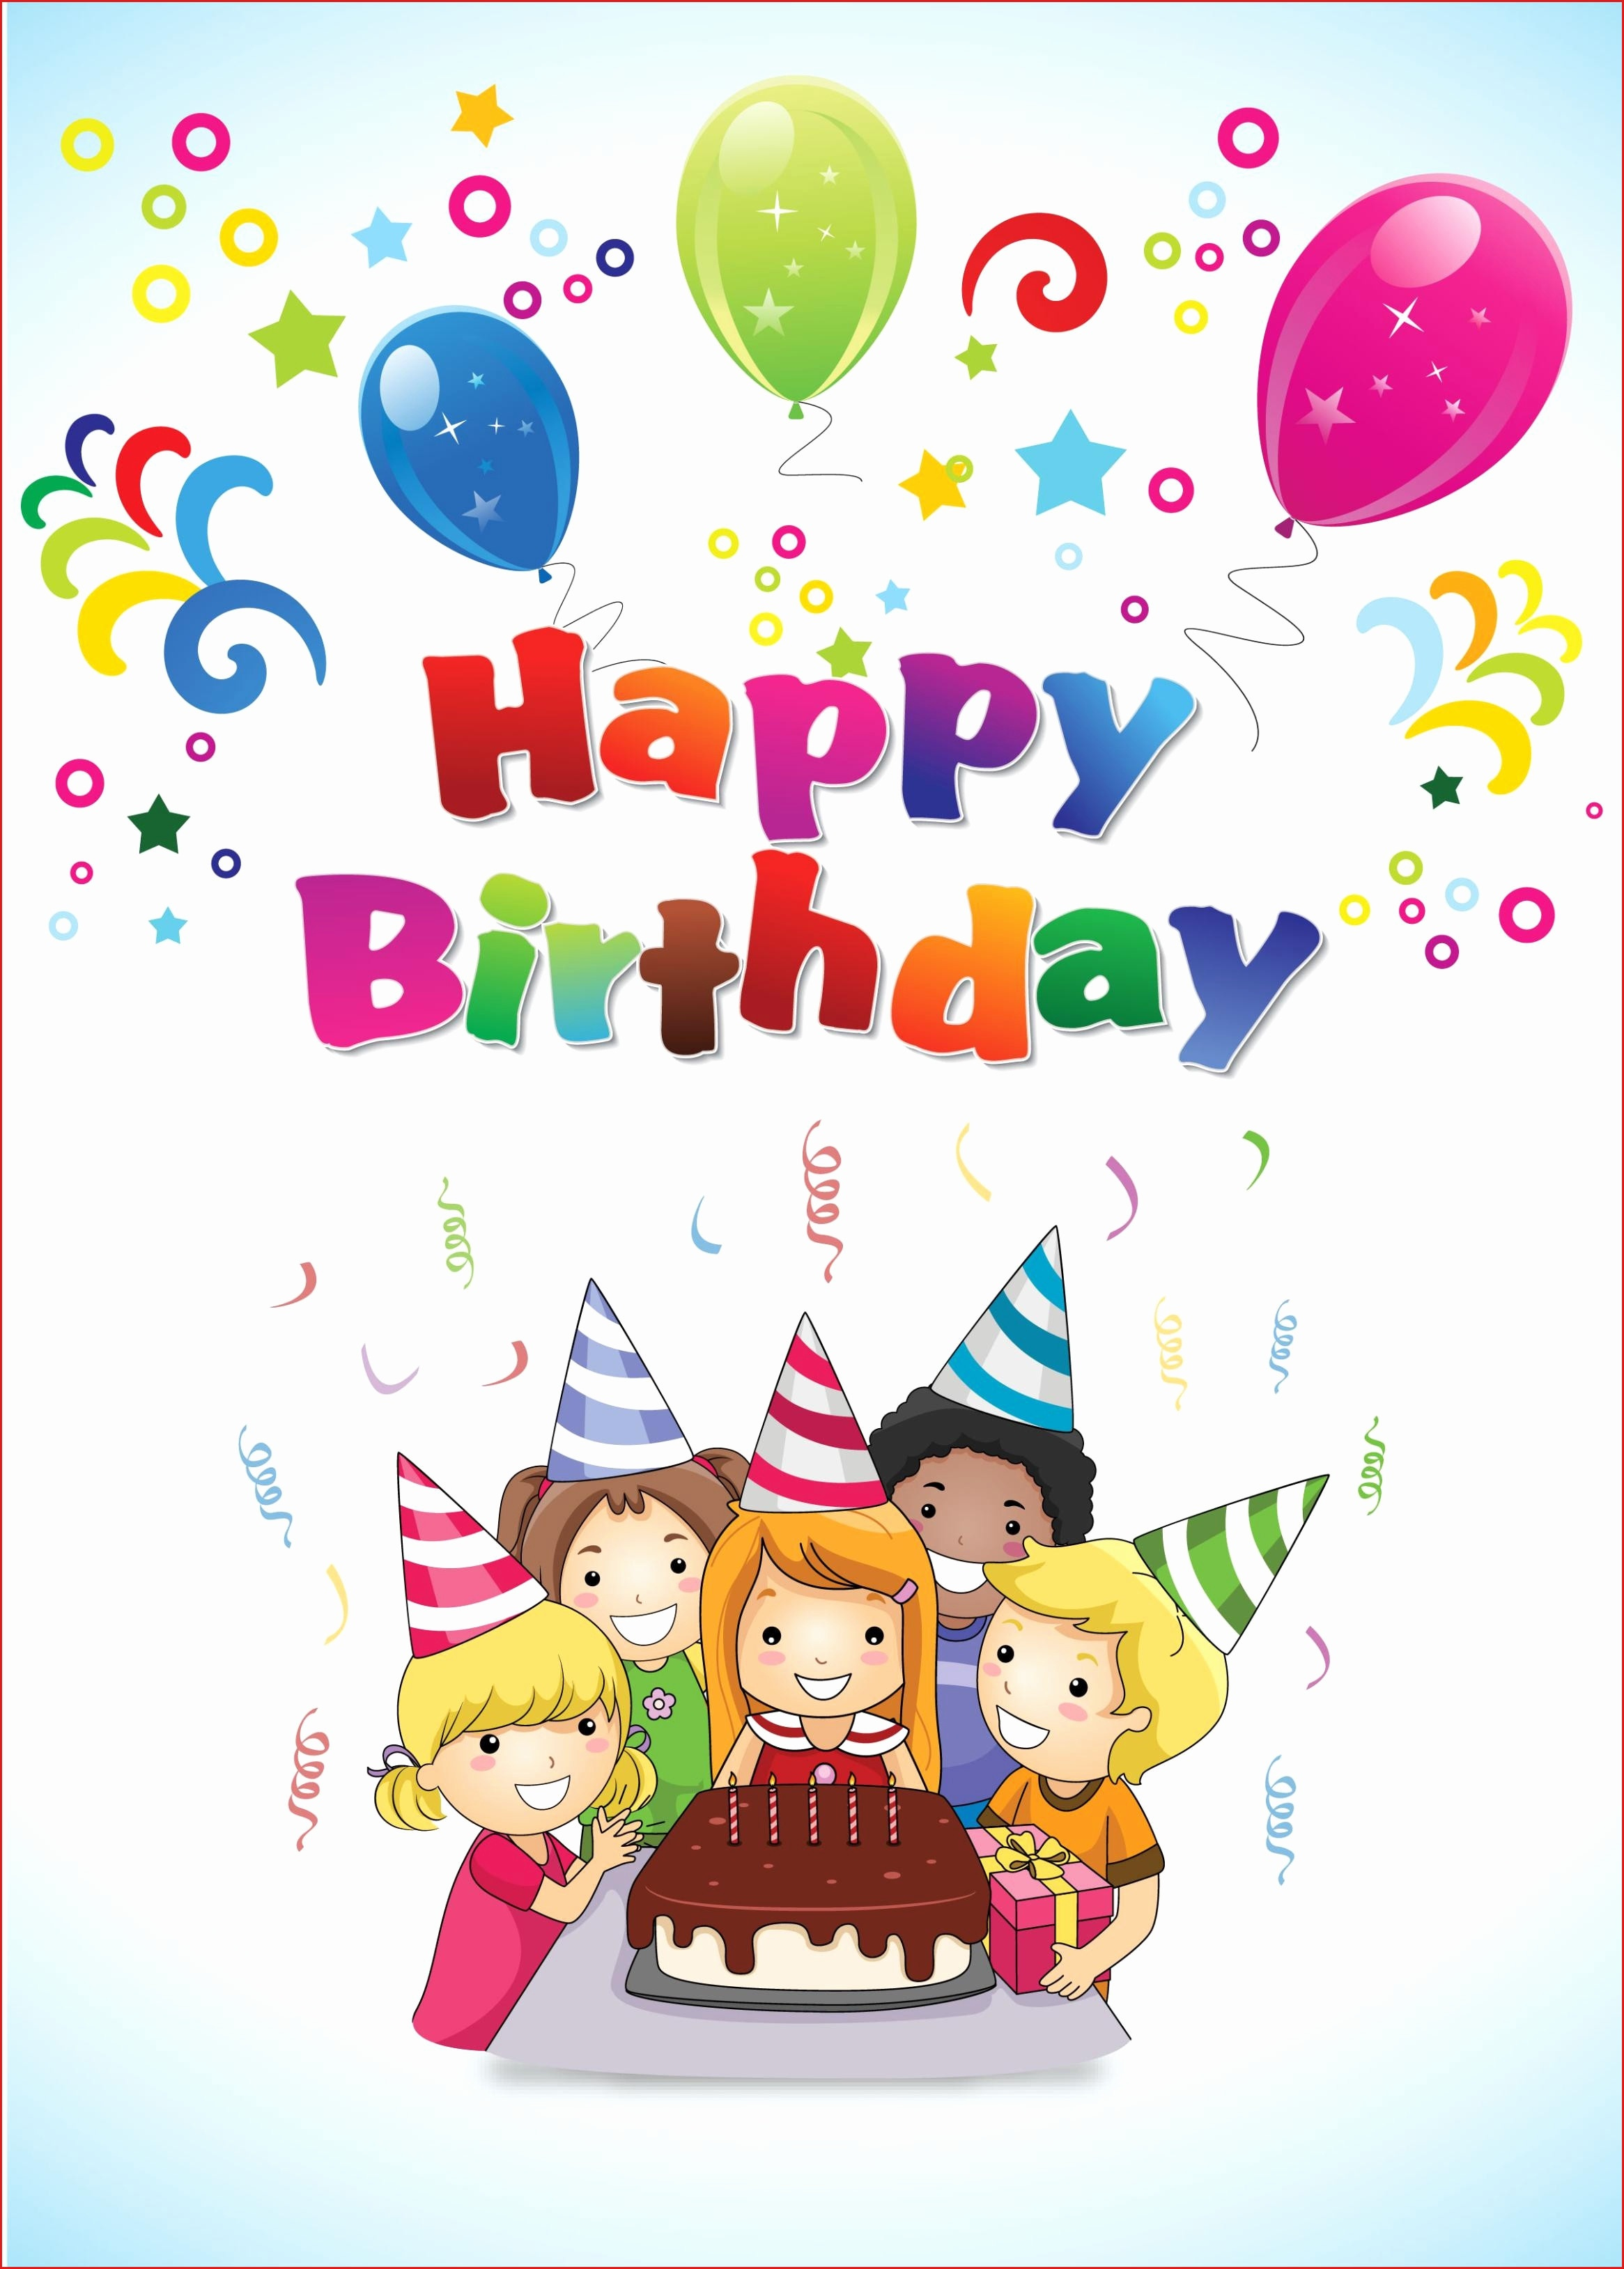 98+ Birthday Card Creator Online Free - Marvelous Greeting Card - Make Your Own Printable Birthday Cards Online Free